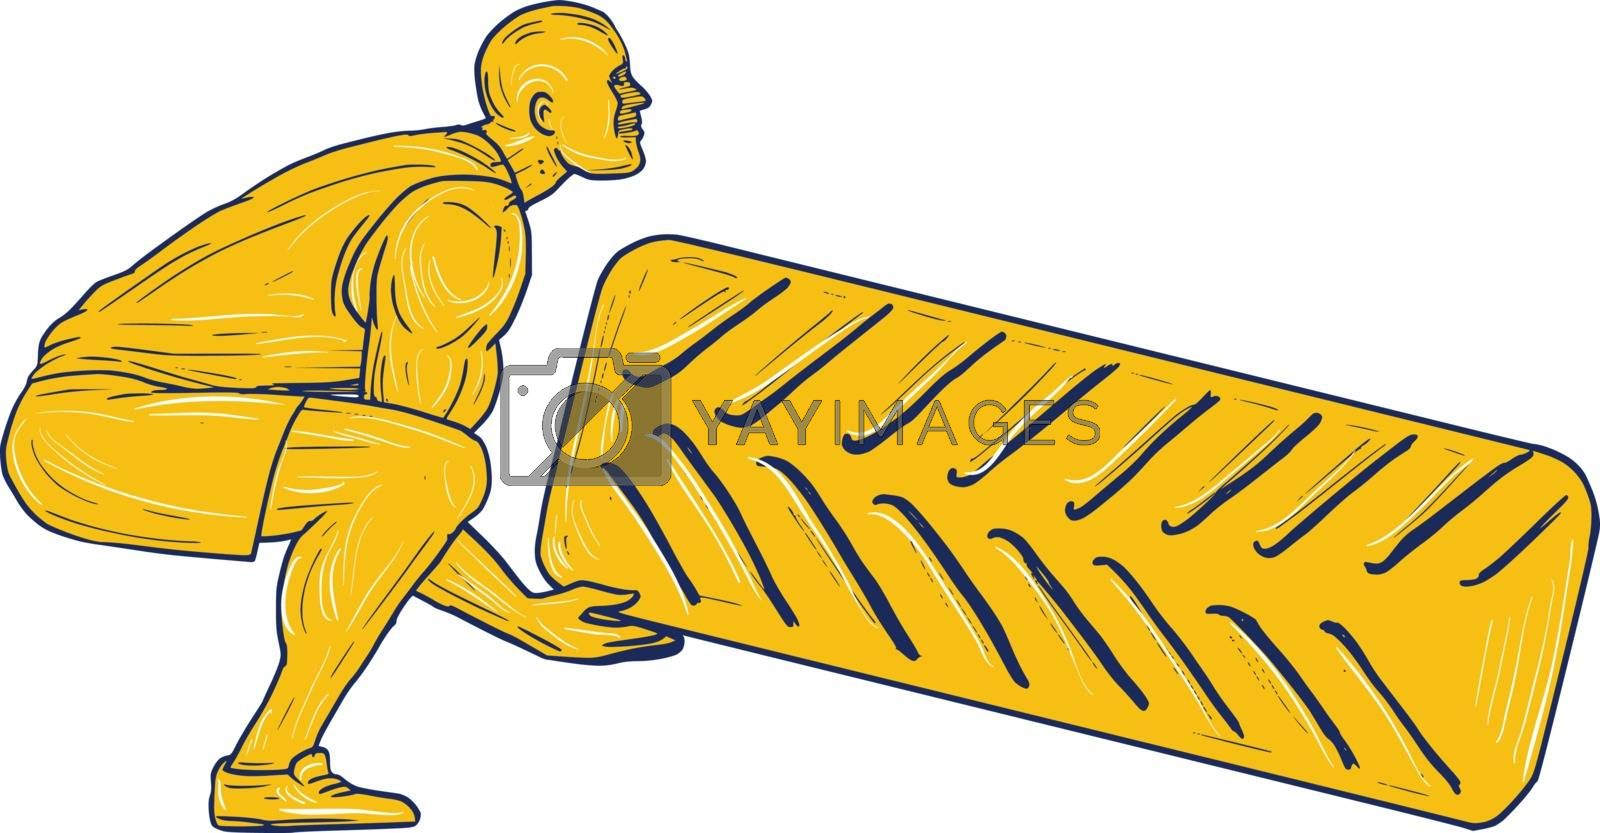 Drawing sketch style illustration of an athlete working out squatting lifting tire viewed from the side set on isolated white background.